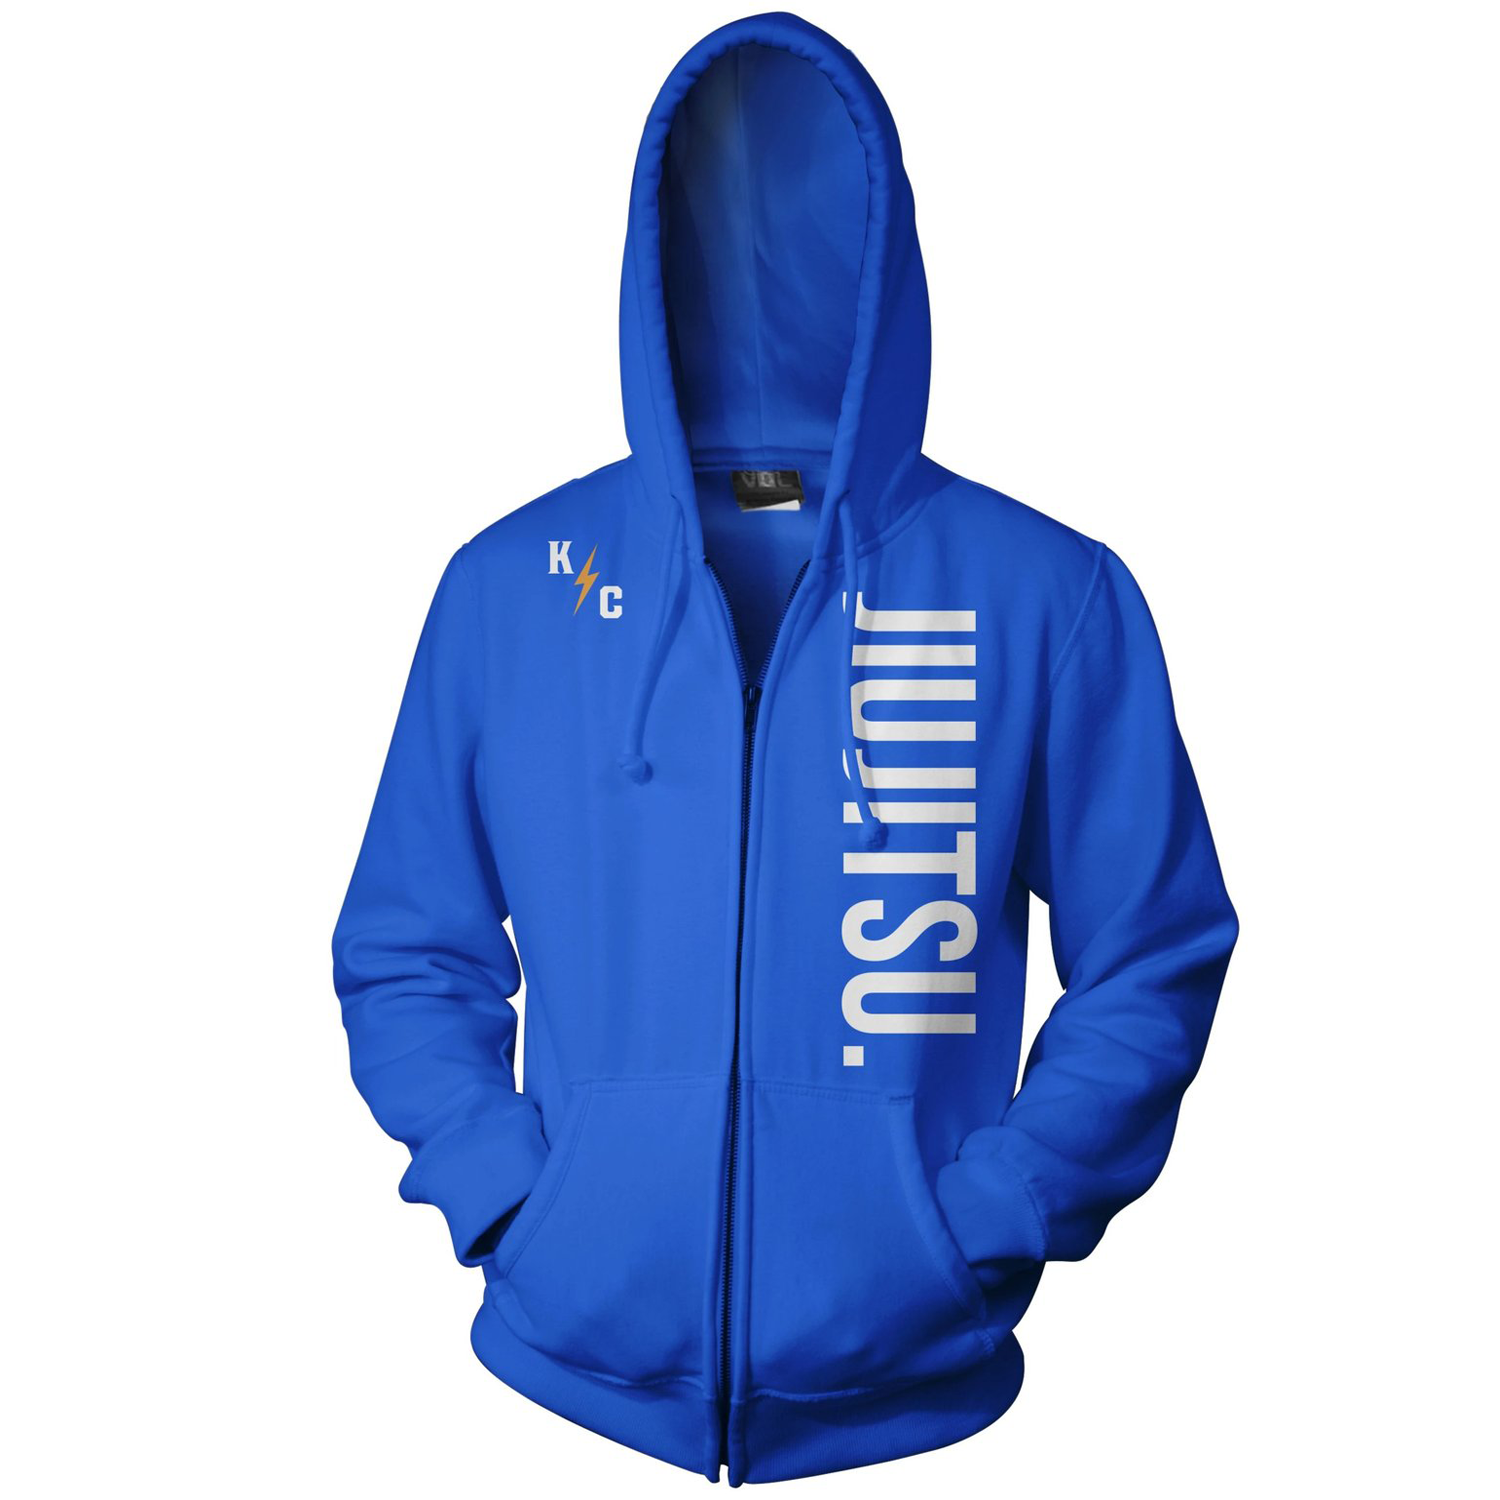 JIU JITSU ZIP UP - BLUE